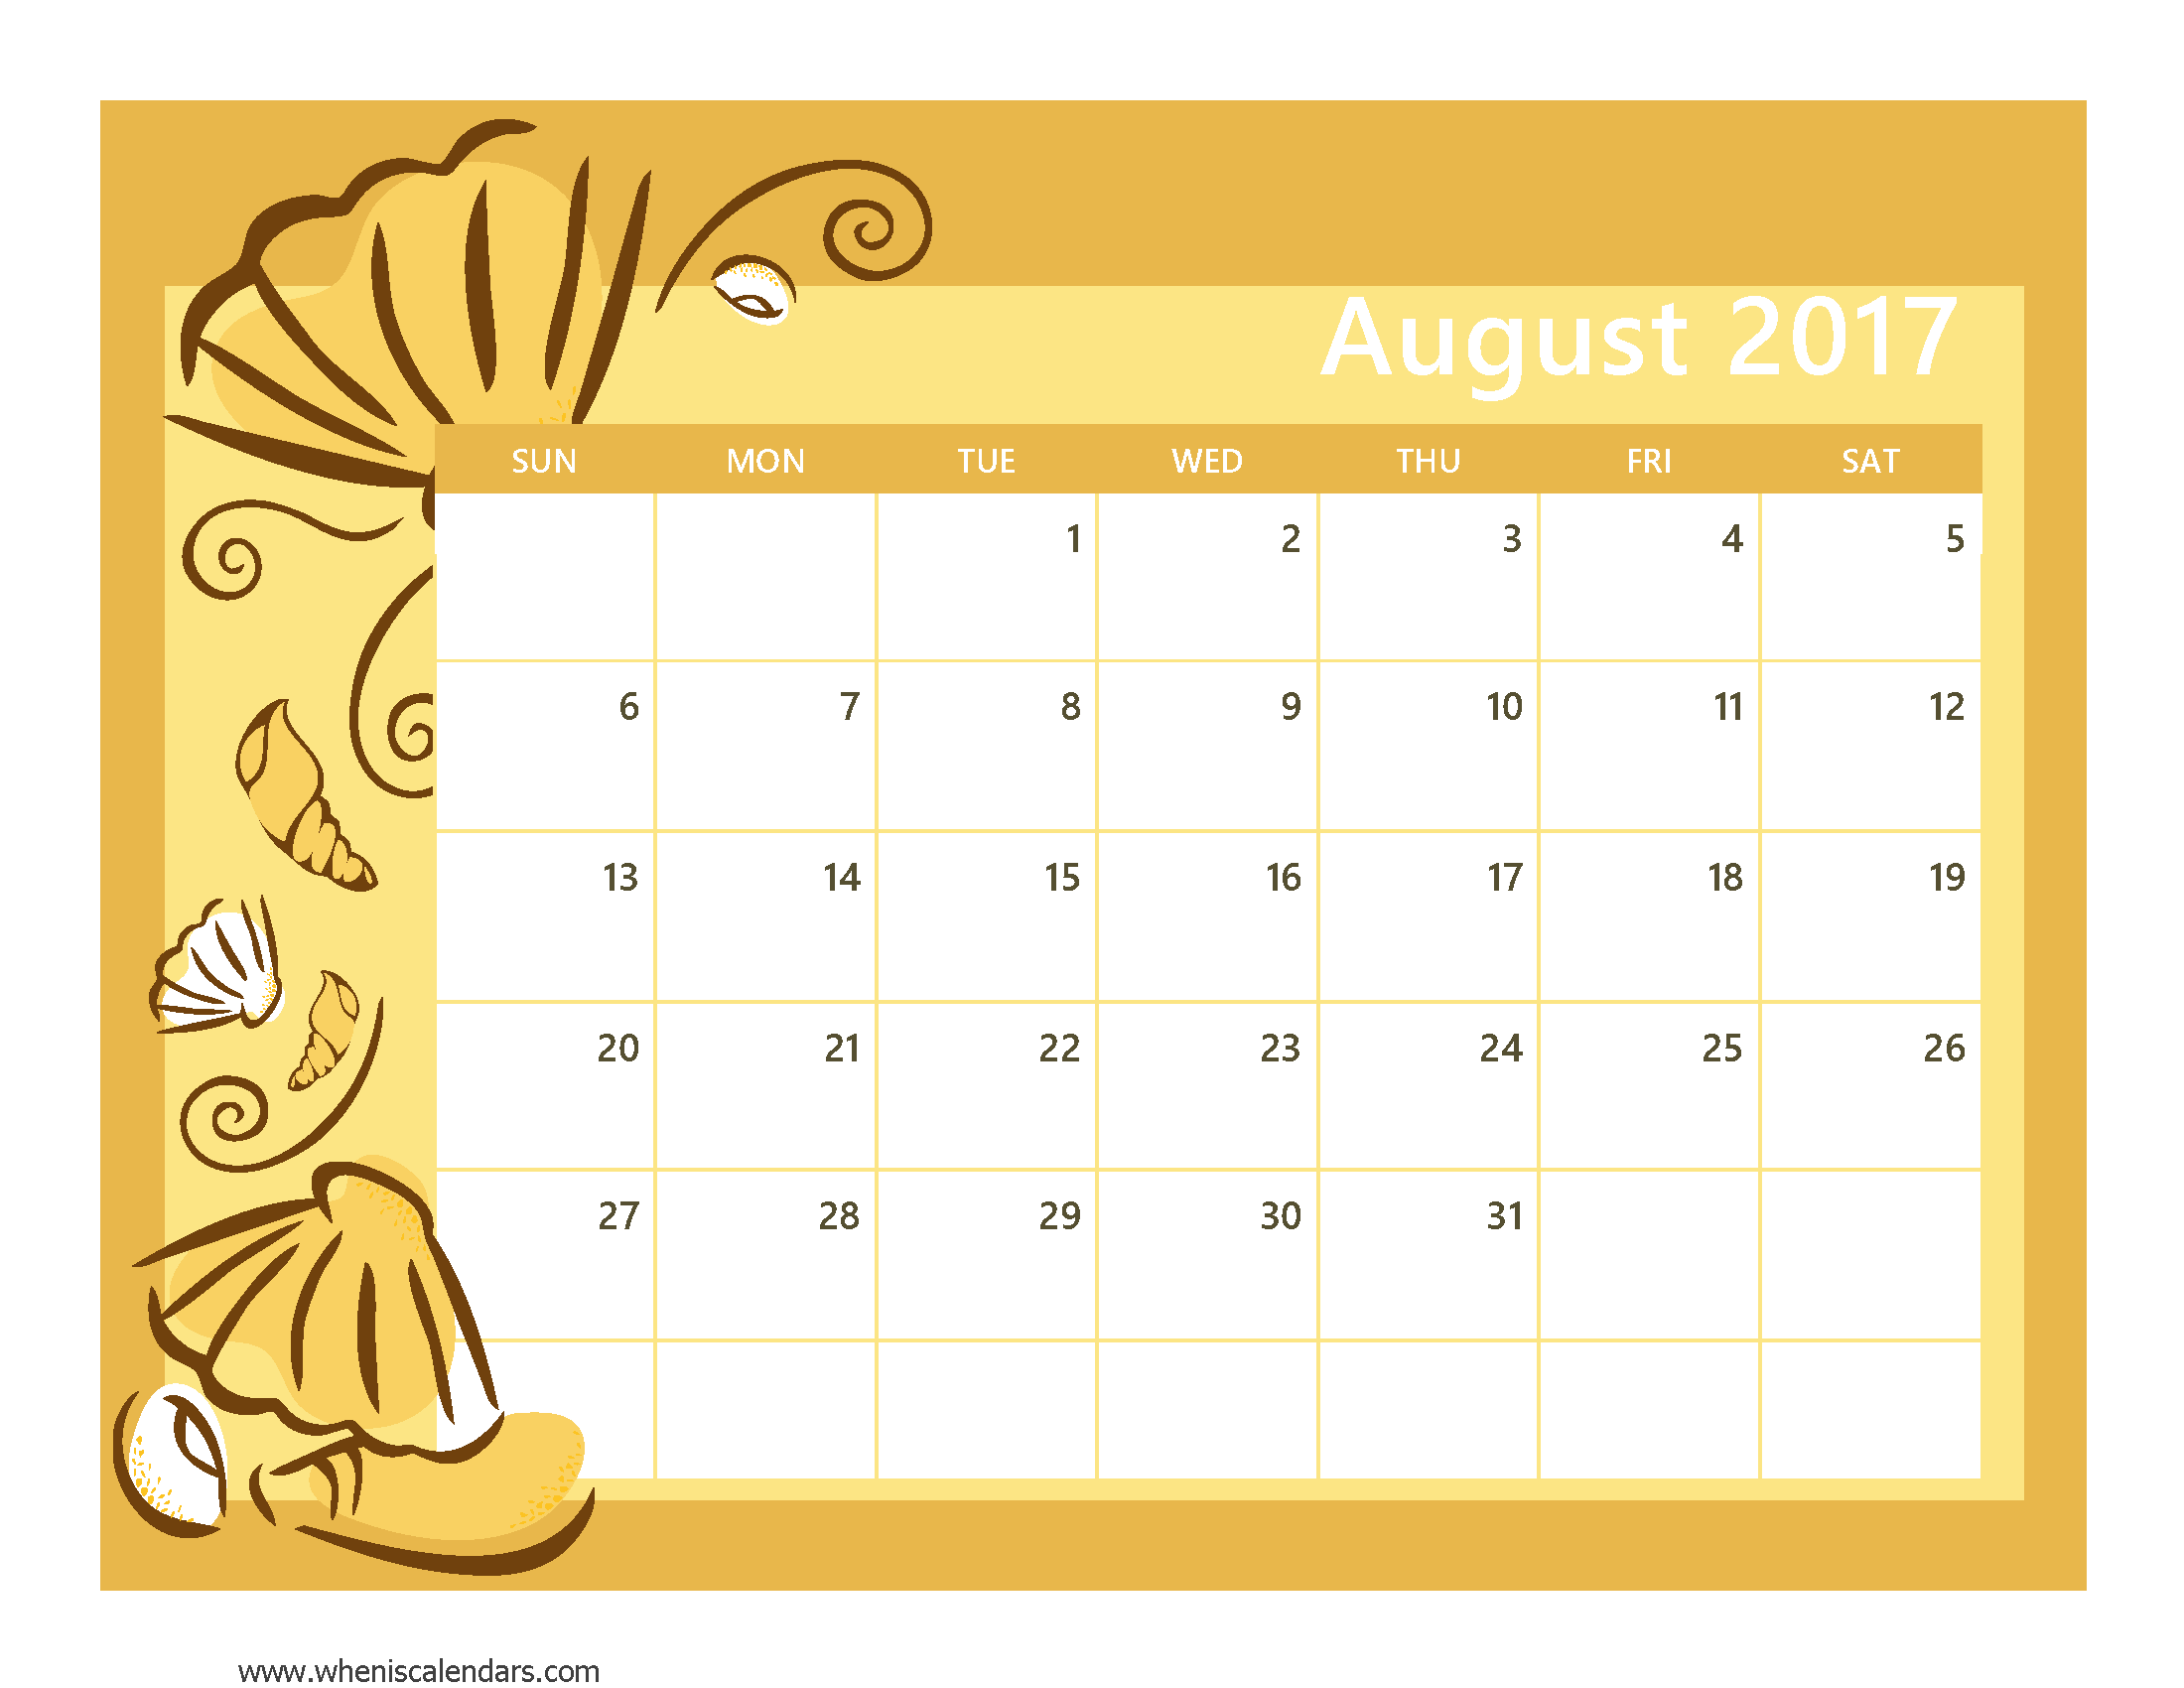 August clipart august 2017. Calendar template with holidays